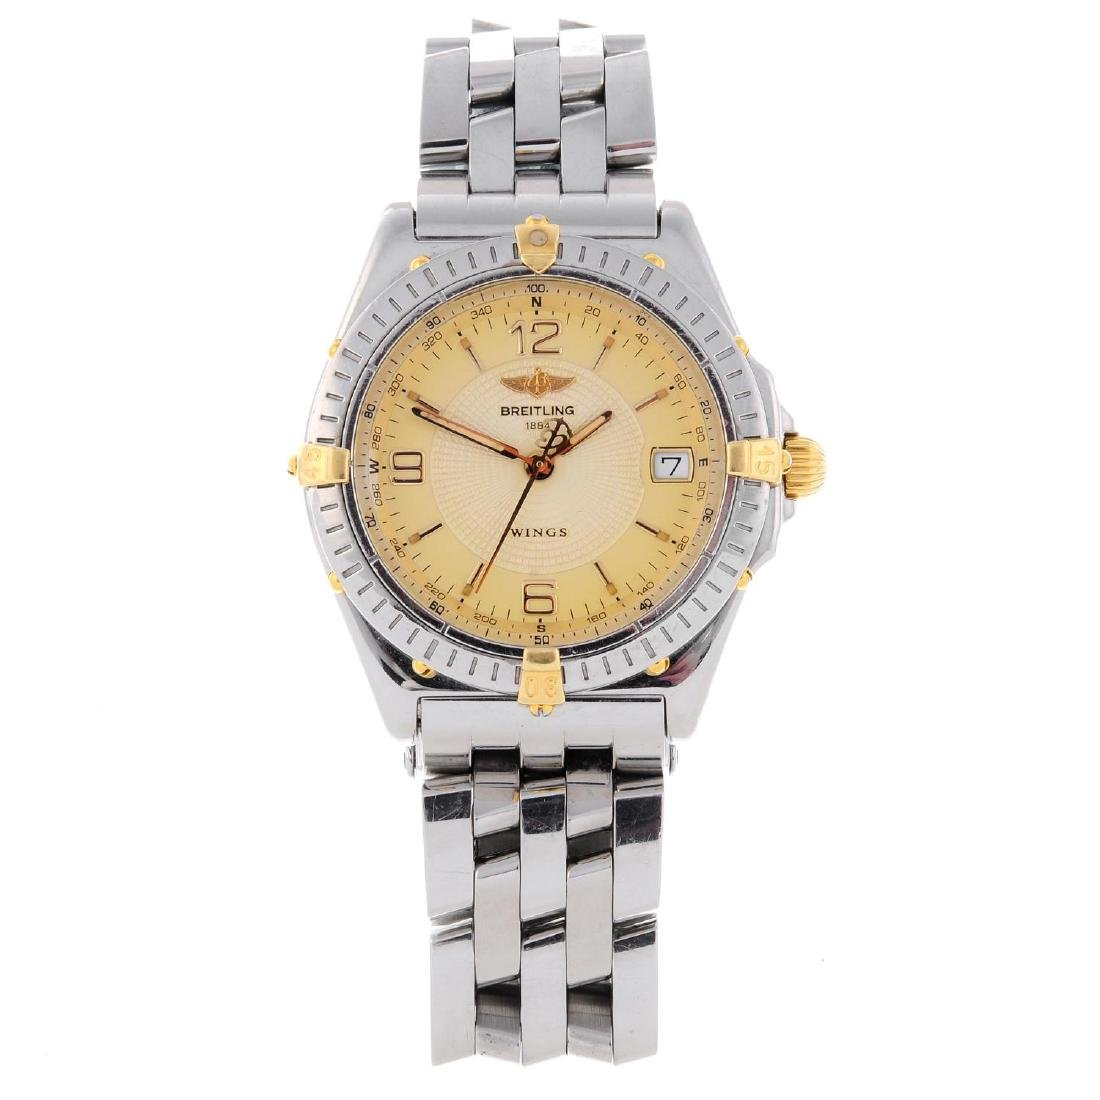 BREITLING - a gentleman's Wings bracelet watch.